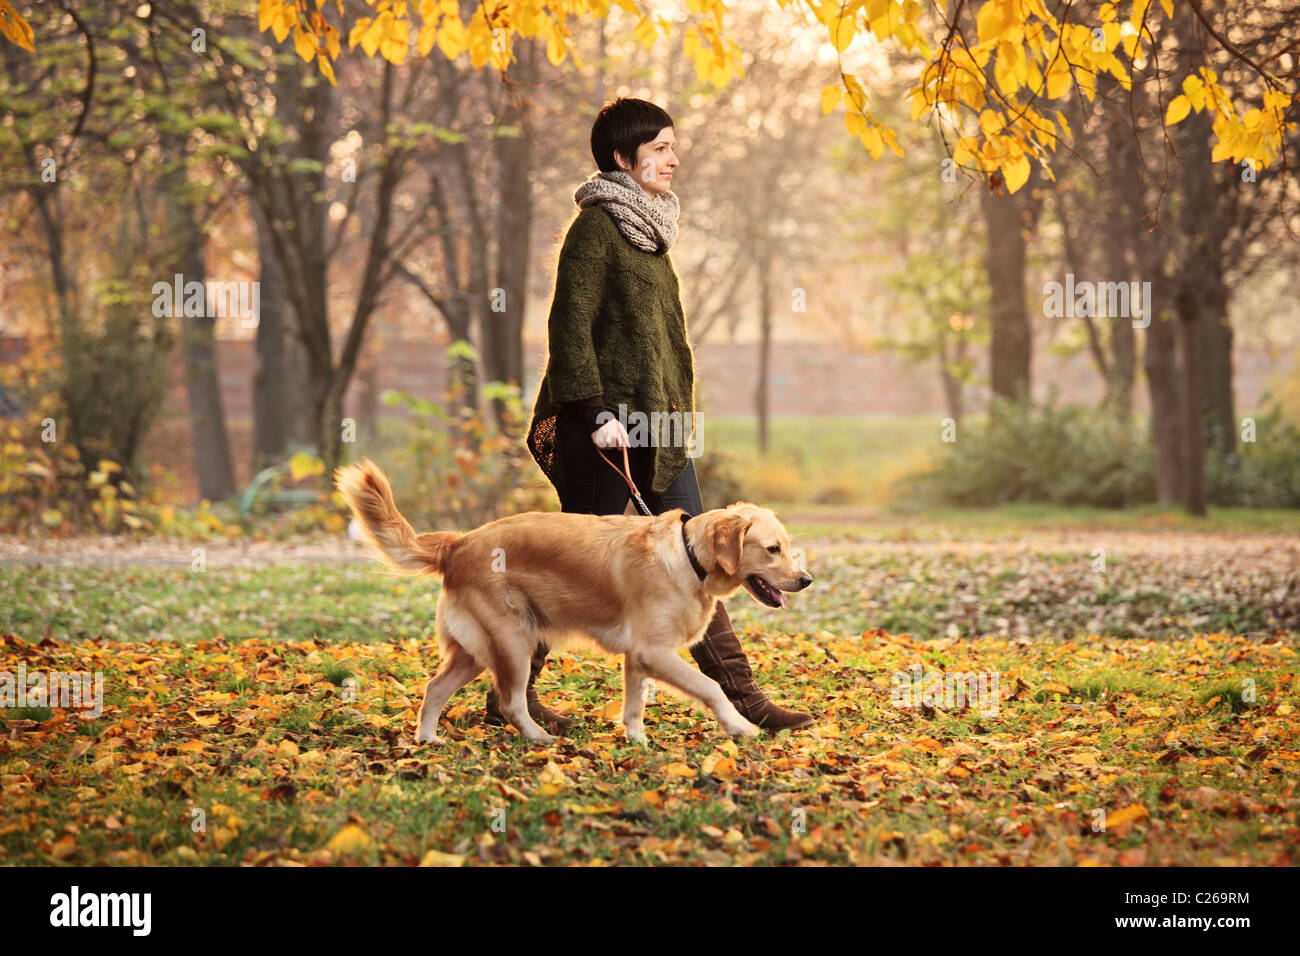 A girl and her dog (Labrador retriever) walking in a park - Stock Image